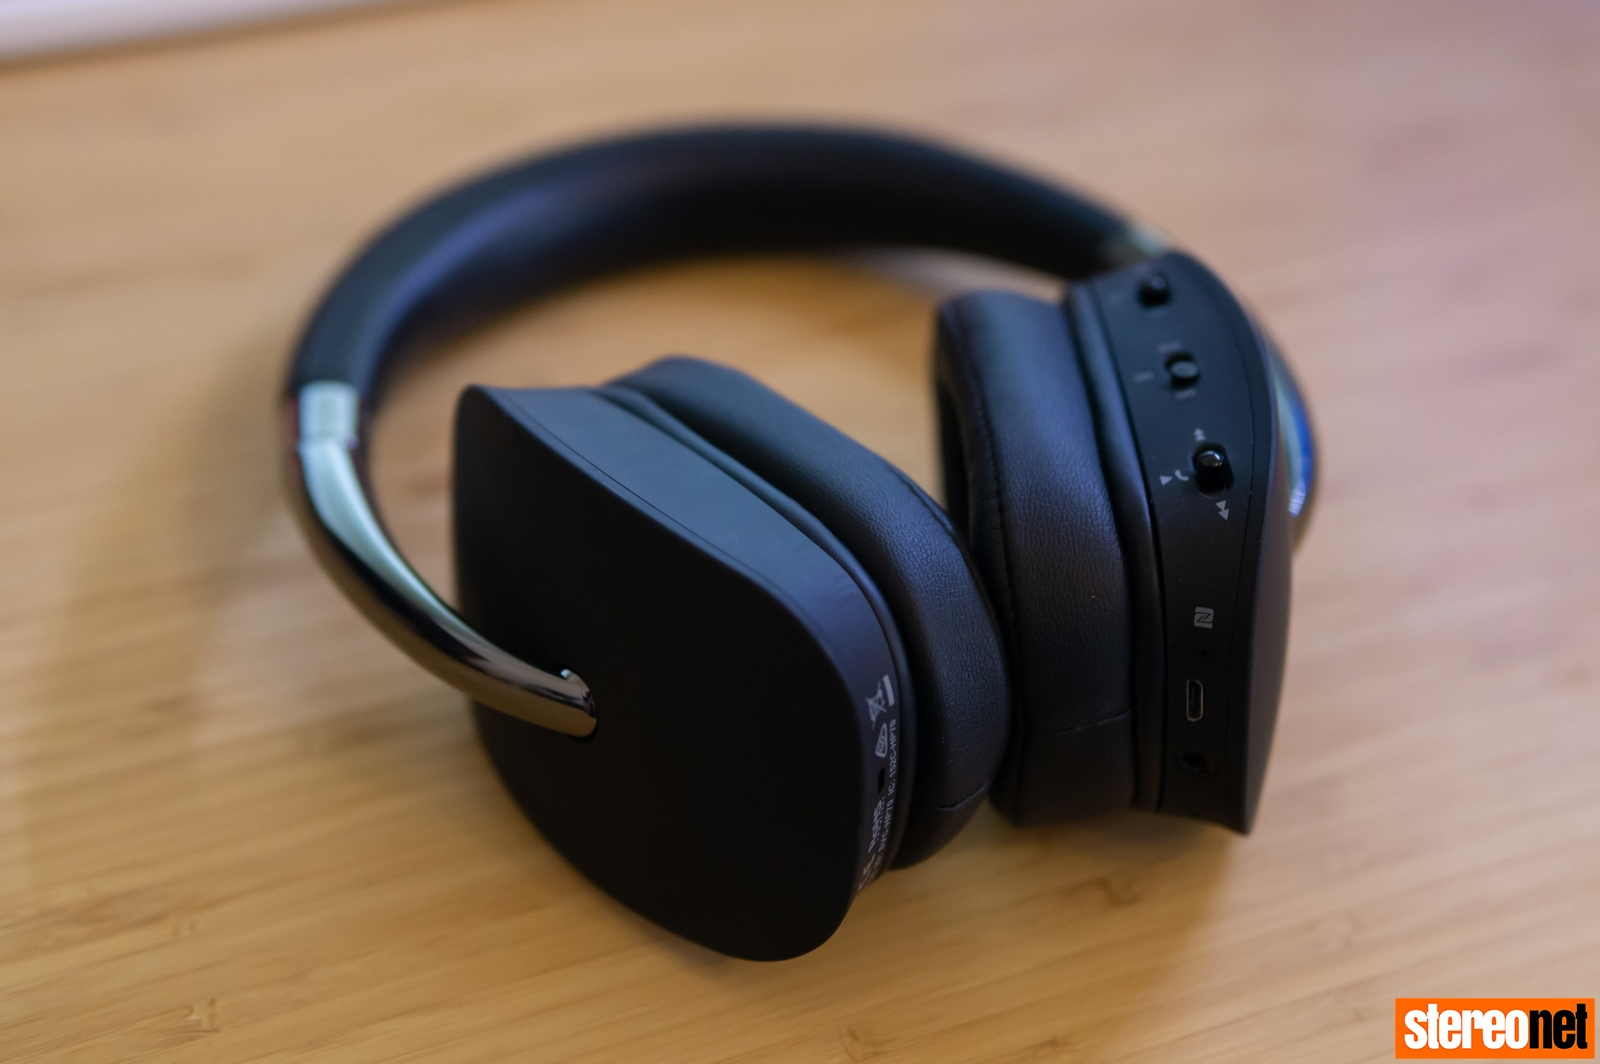 REVIEW: NAD ELECTRONICS HP70 NOISE CANCELLING BLUETOOTH HEADPHONES